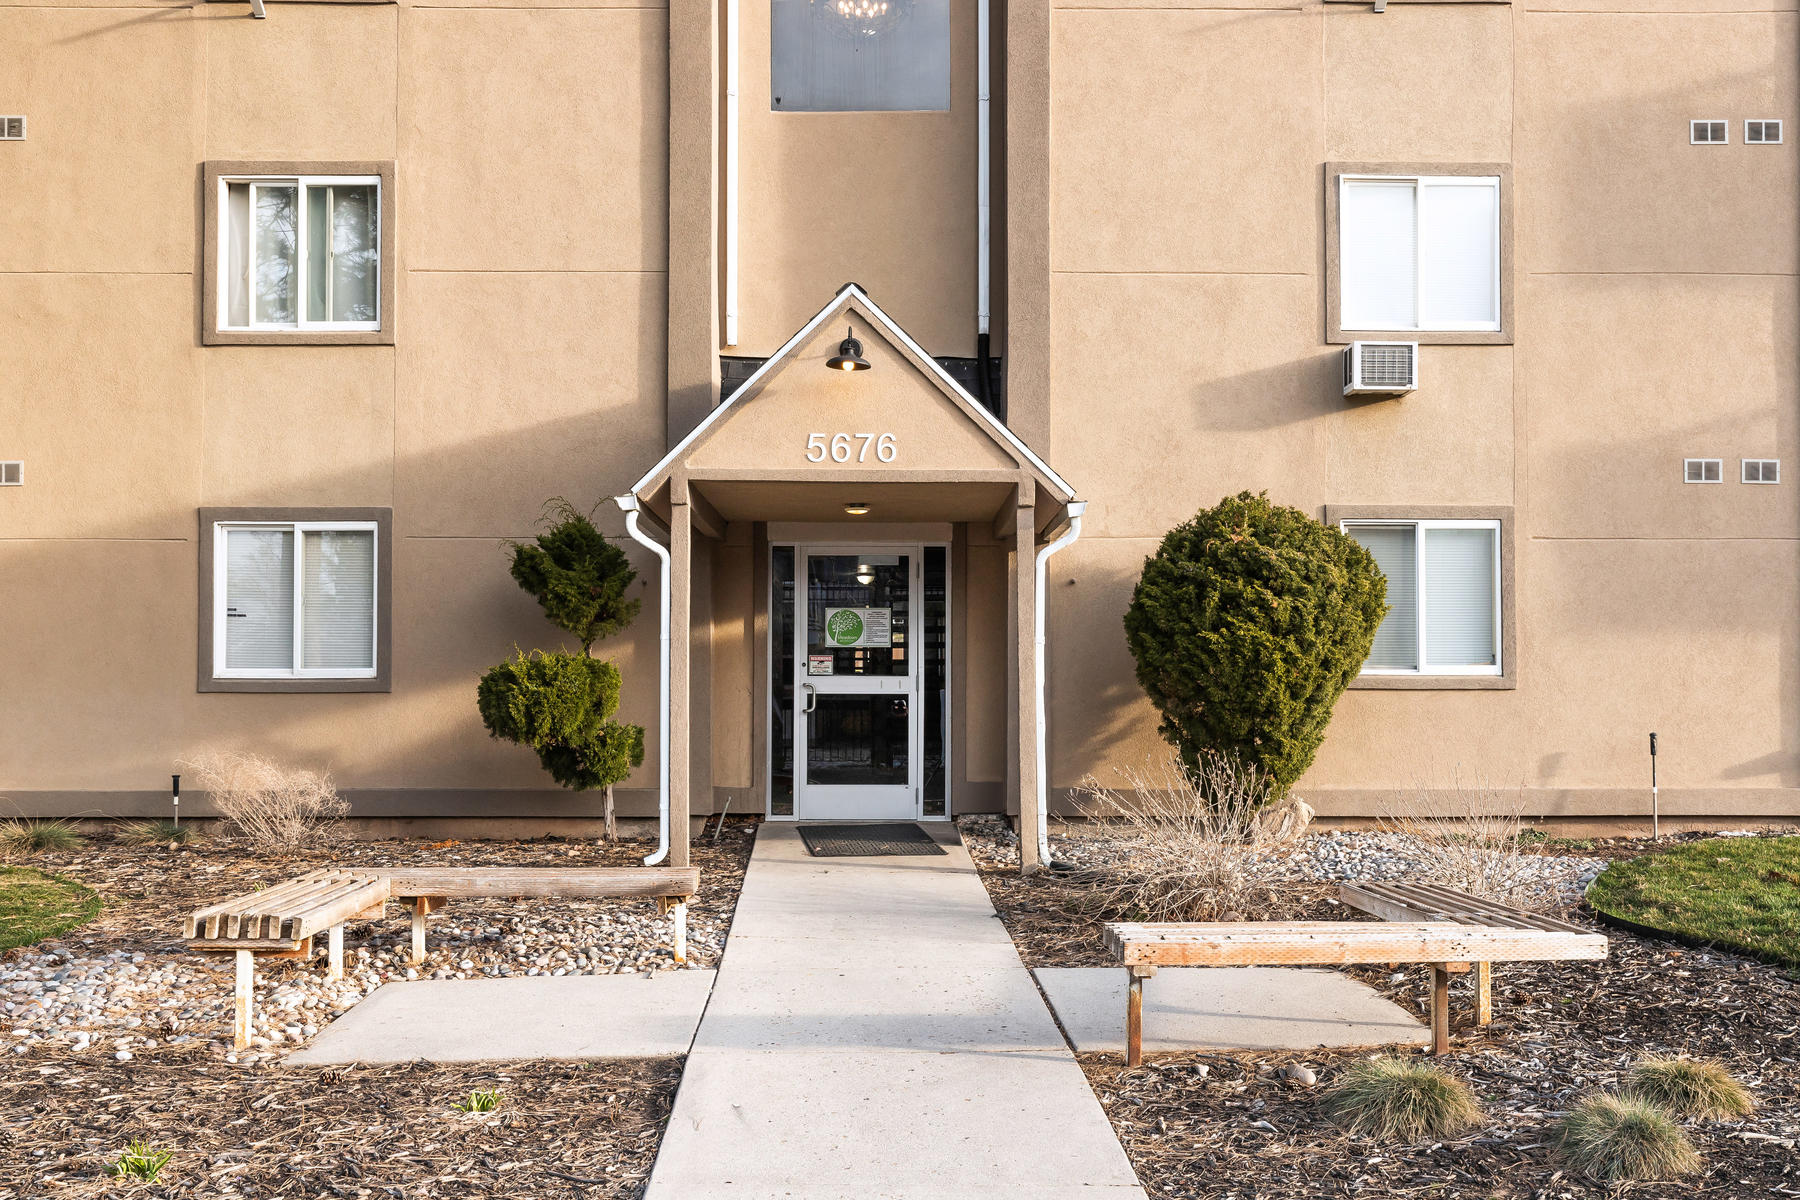 Condominiums for Sale at Updated Condo in South Ogden 5676 S Meadow Lane #106 South Ogden, Utah 84403 United States